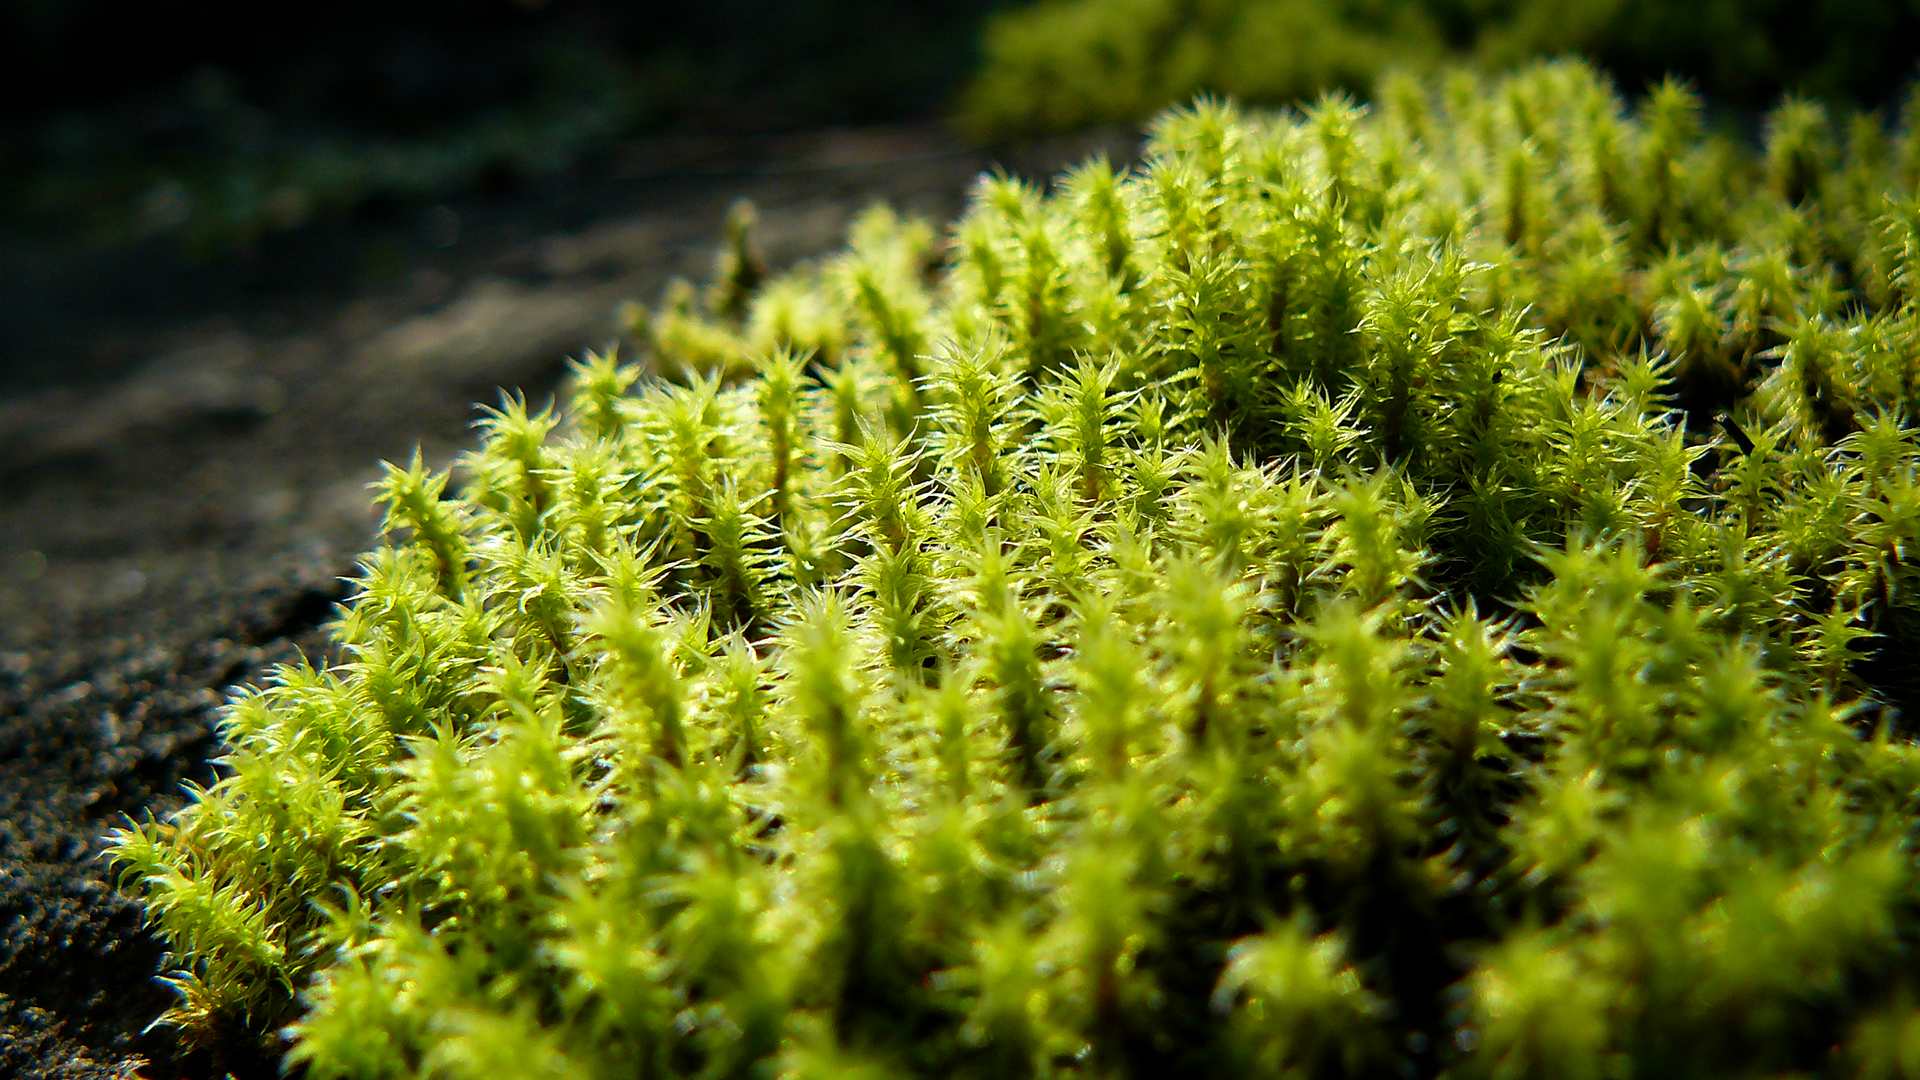 Moss 1920x1080, Top on B.SCB Wallpapers